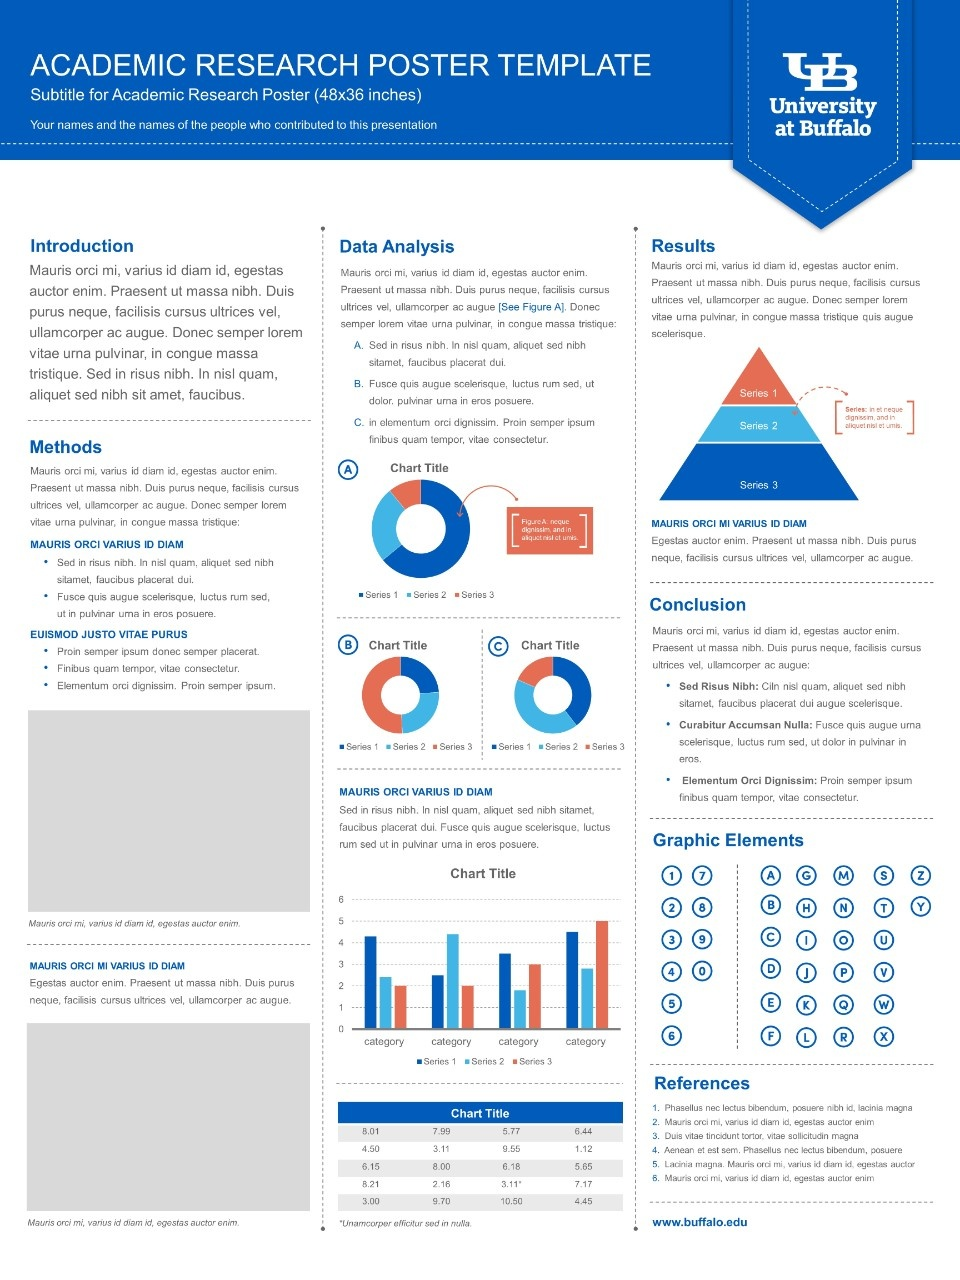 presentation templates university at buffalo school of